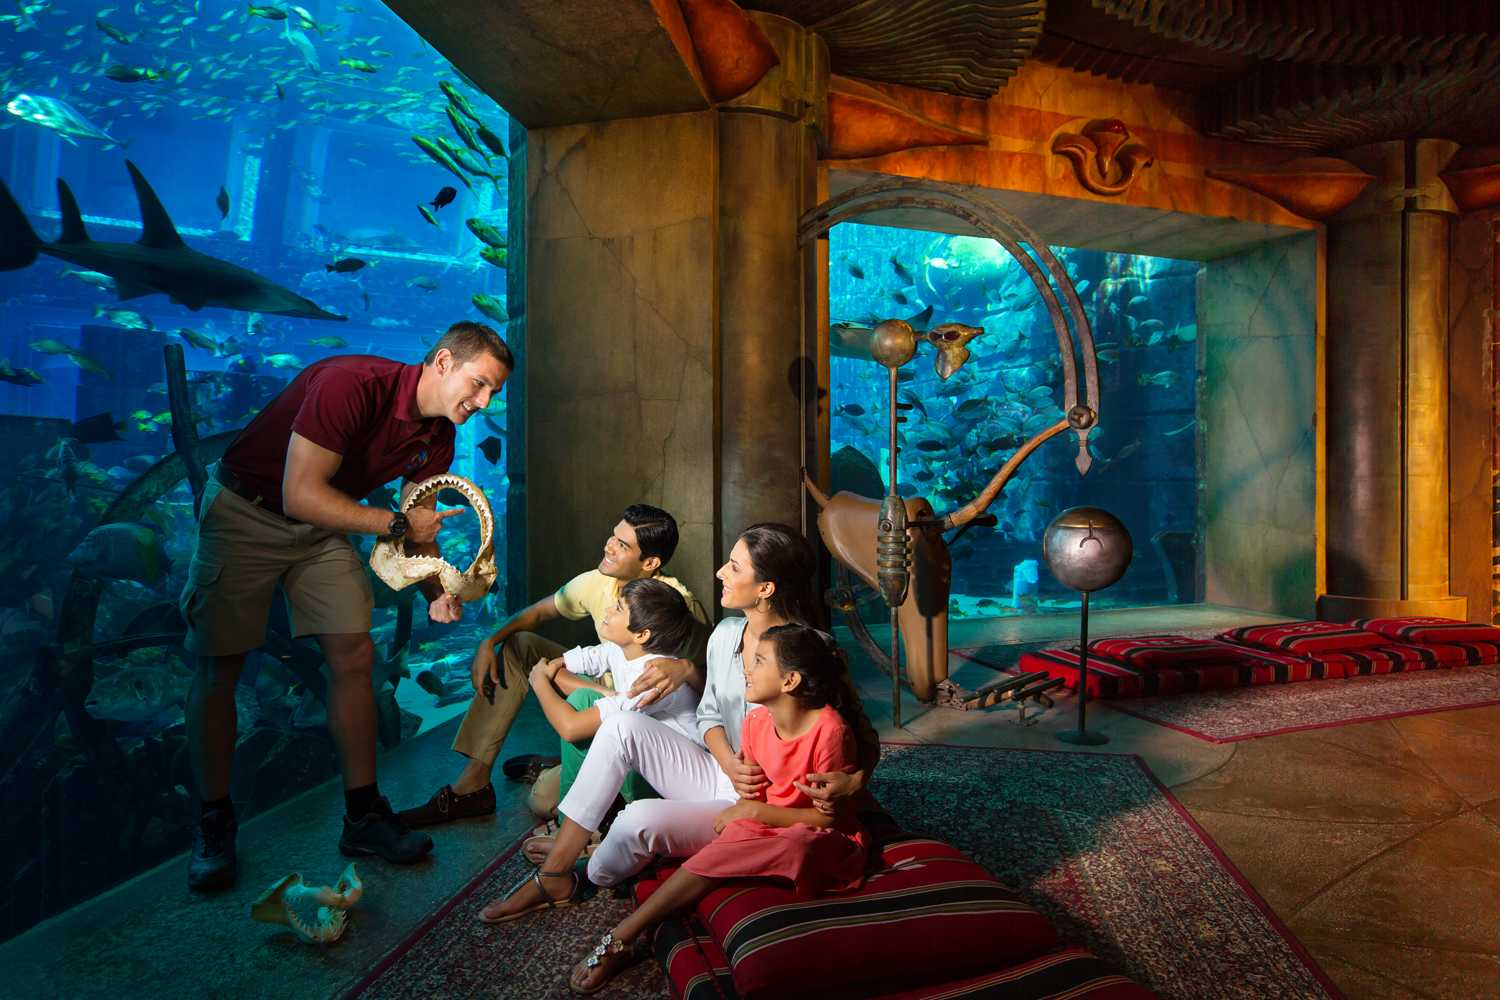 original_marine_and_waterpark_the_lost_chambers_aquarium_24_09_2014_5676ext